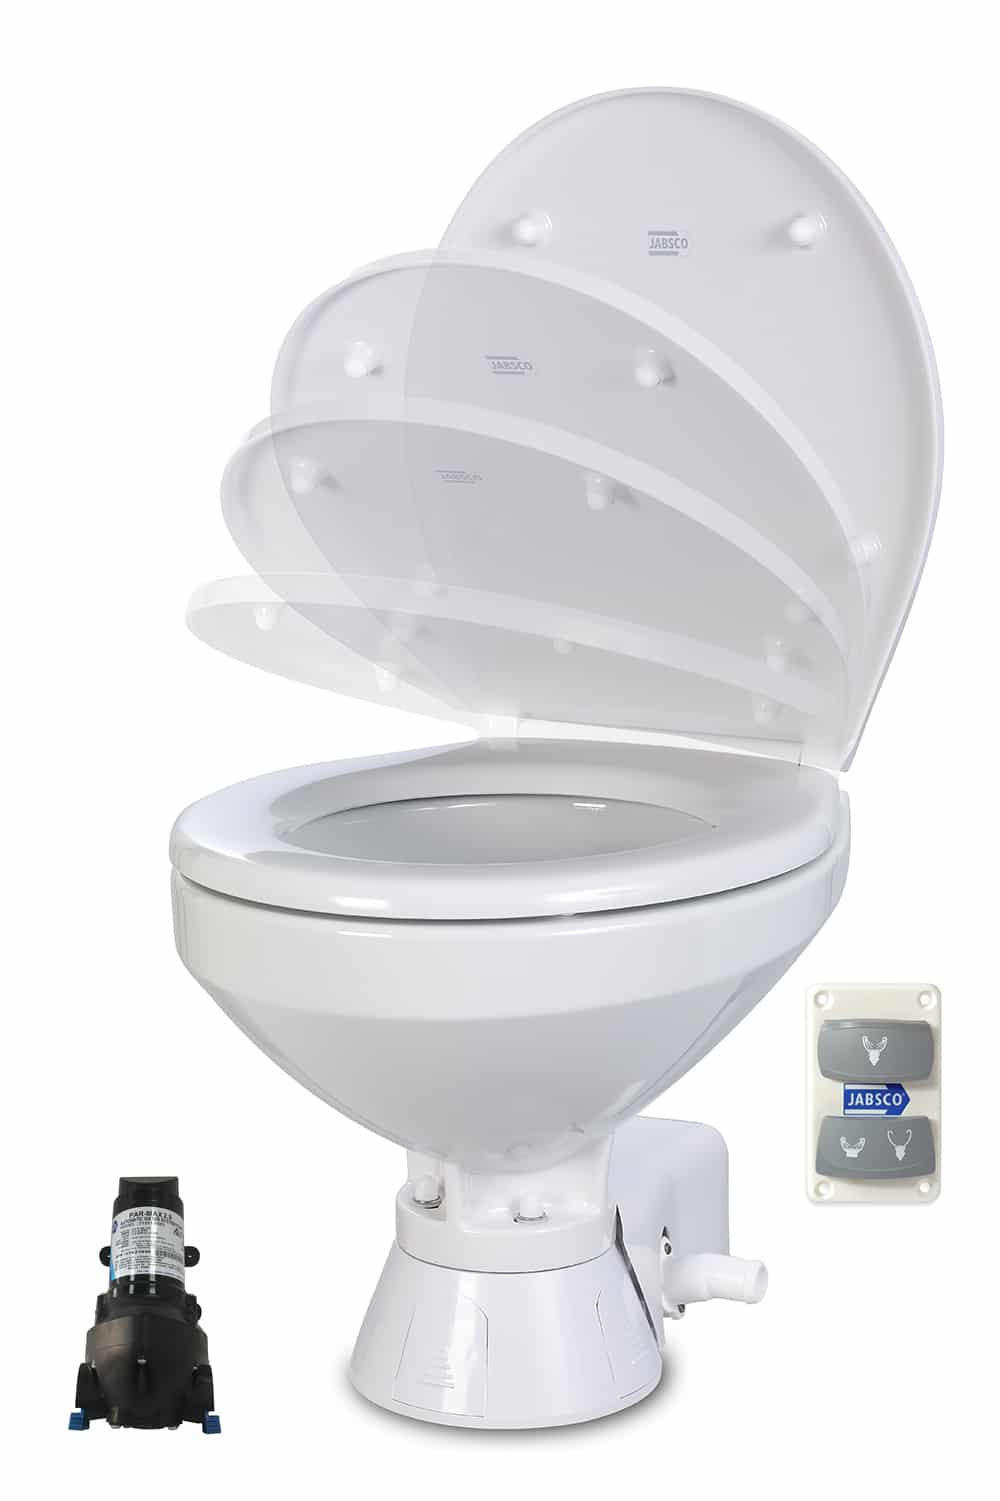 Upflush toilet and Shower Elegant 7 Best Macerating toilets Apr 2020 – Reviews & Buying Guide